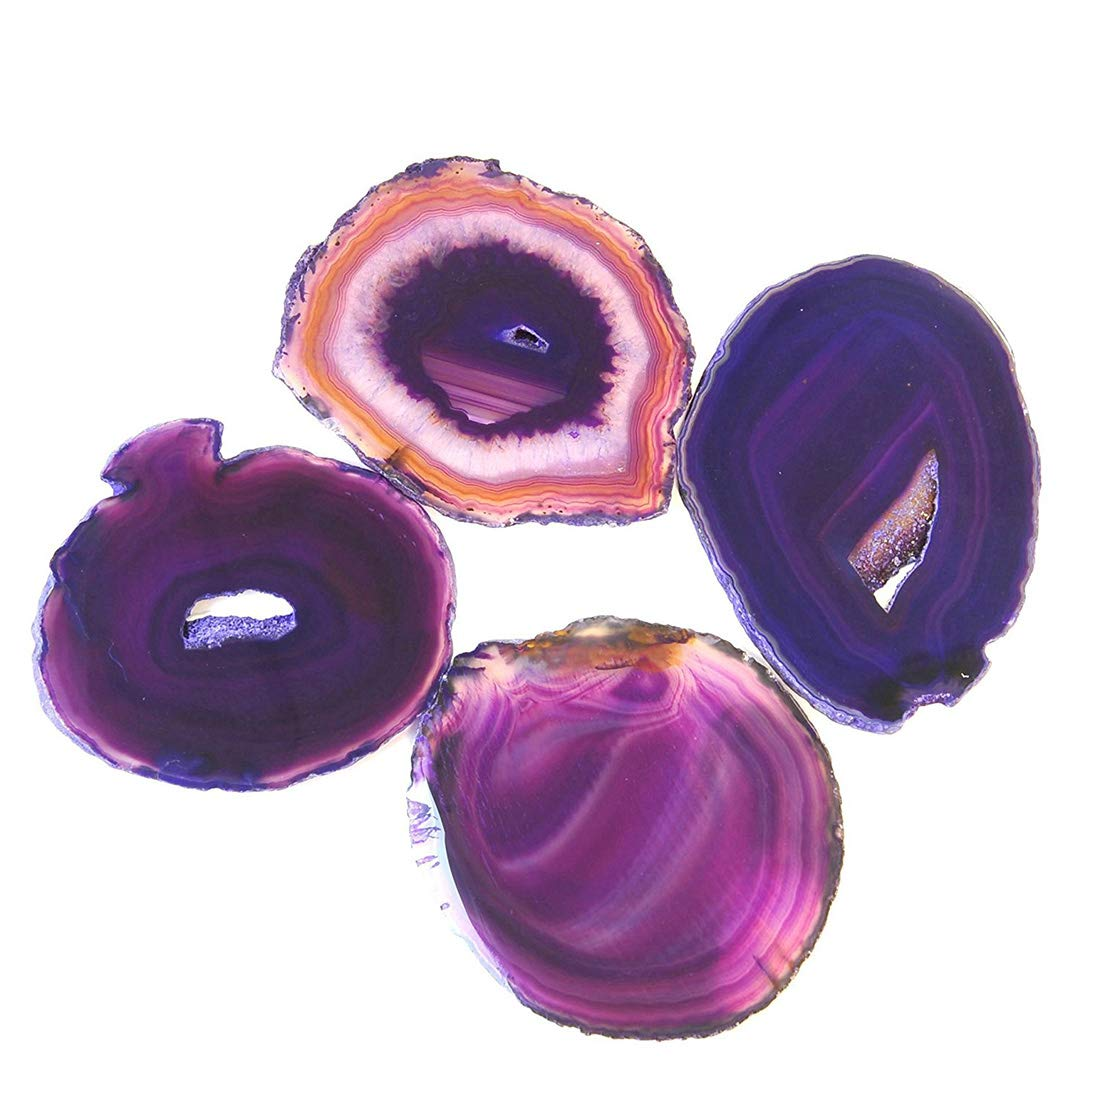 JIC Gem 3-3.5'' Polished Purple Dyed Sliced Brazilian Agate Coasters Natural Geode with Rubber Bumpers Home Decoration Set of 4